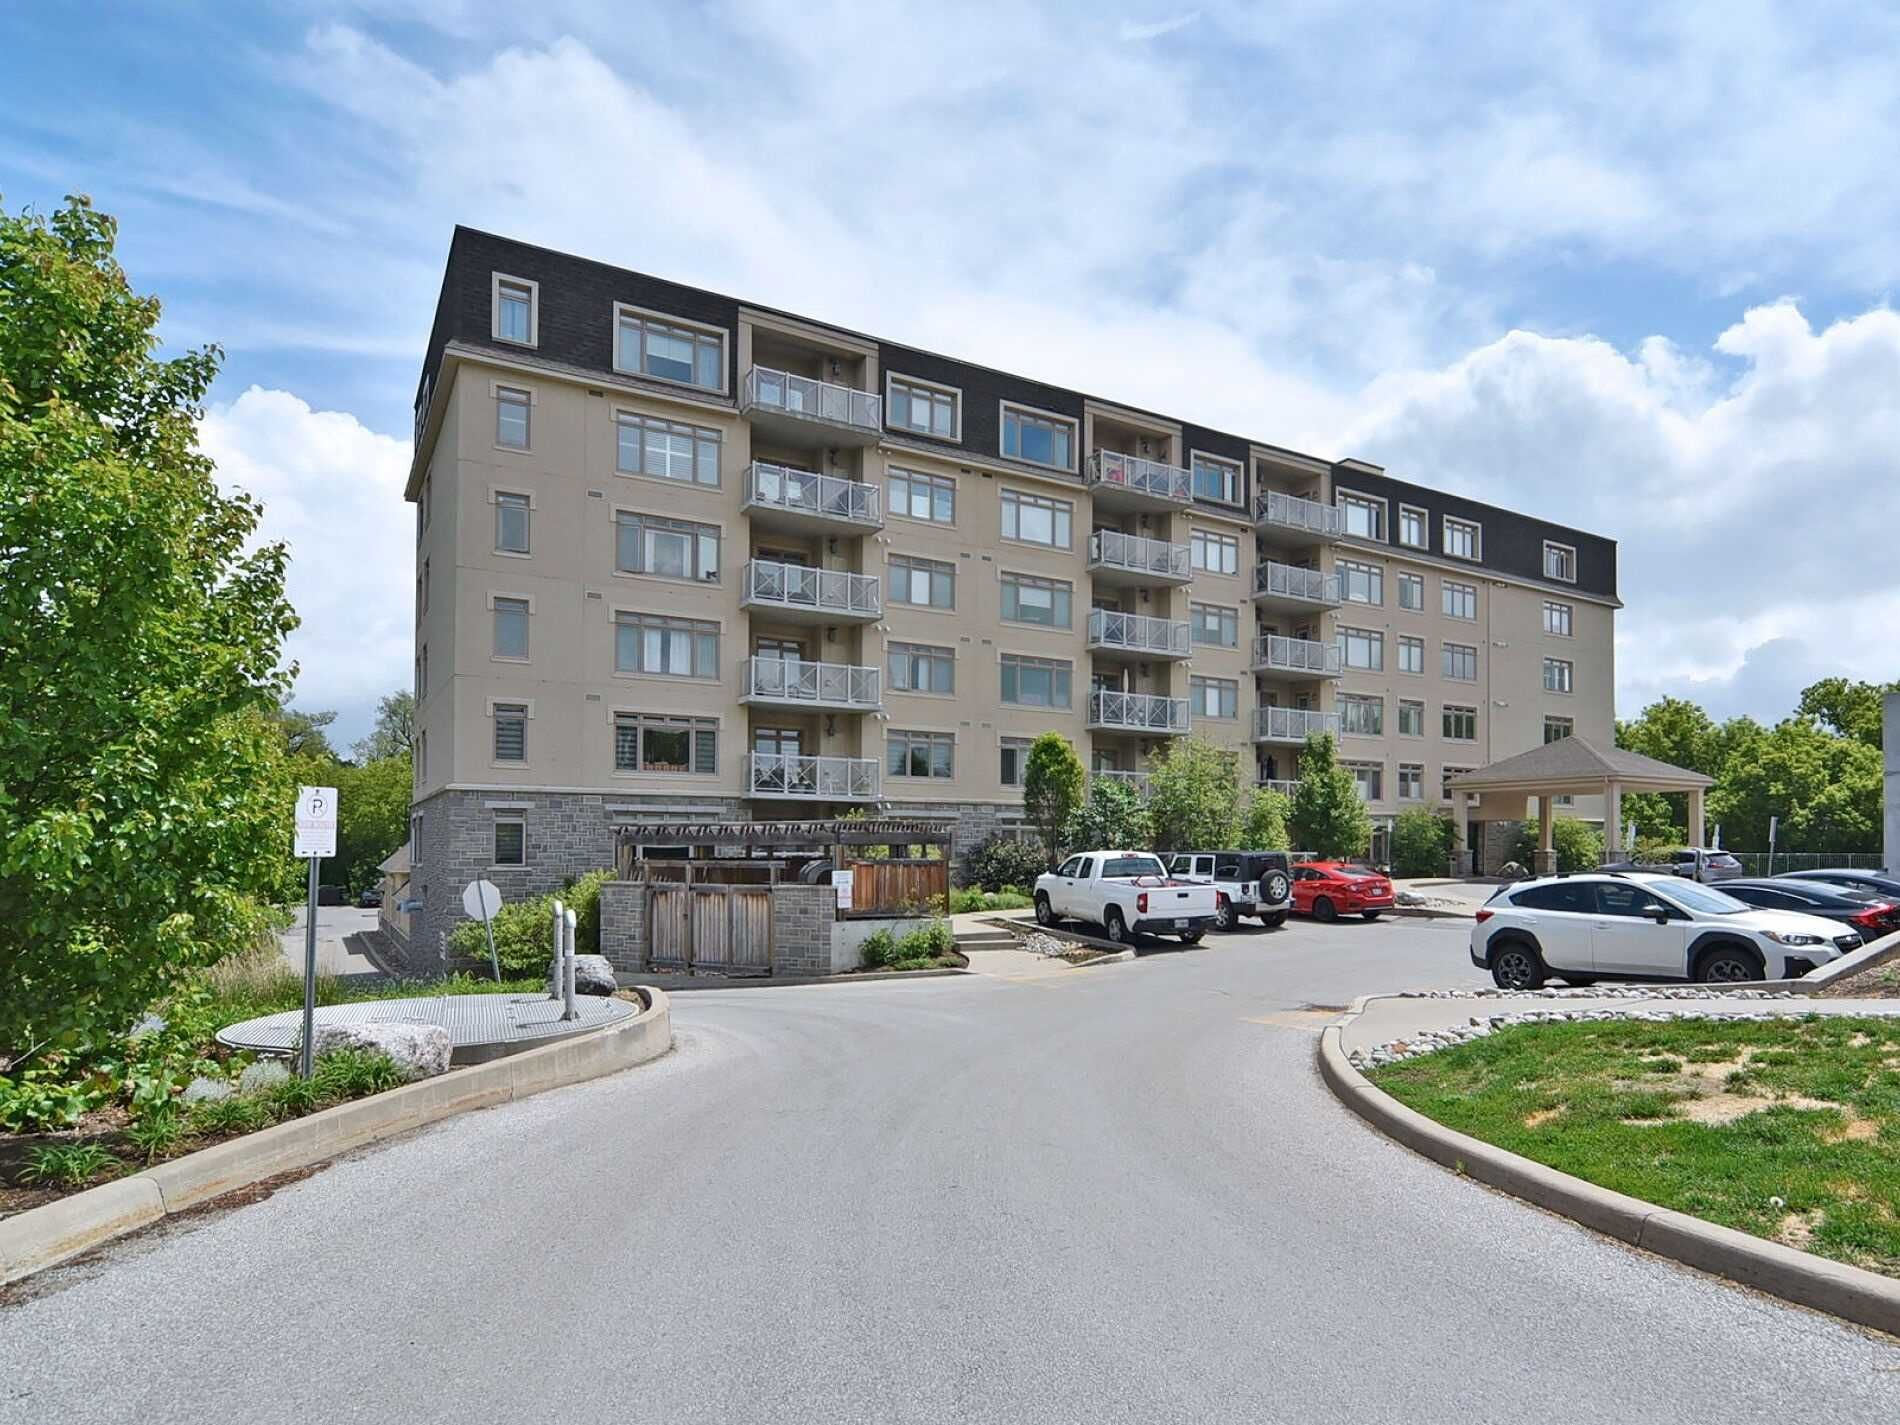 149 Church St, unit 409 for sale in Toronto - image #1